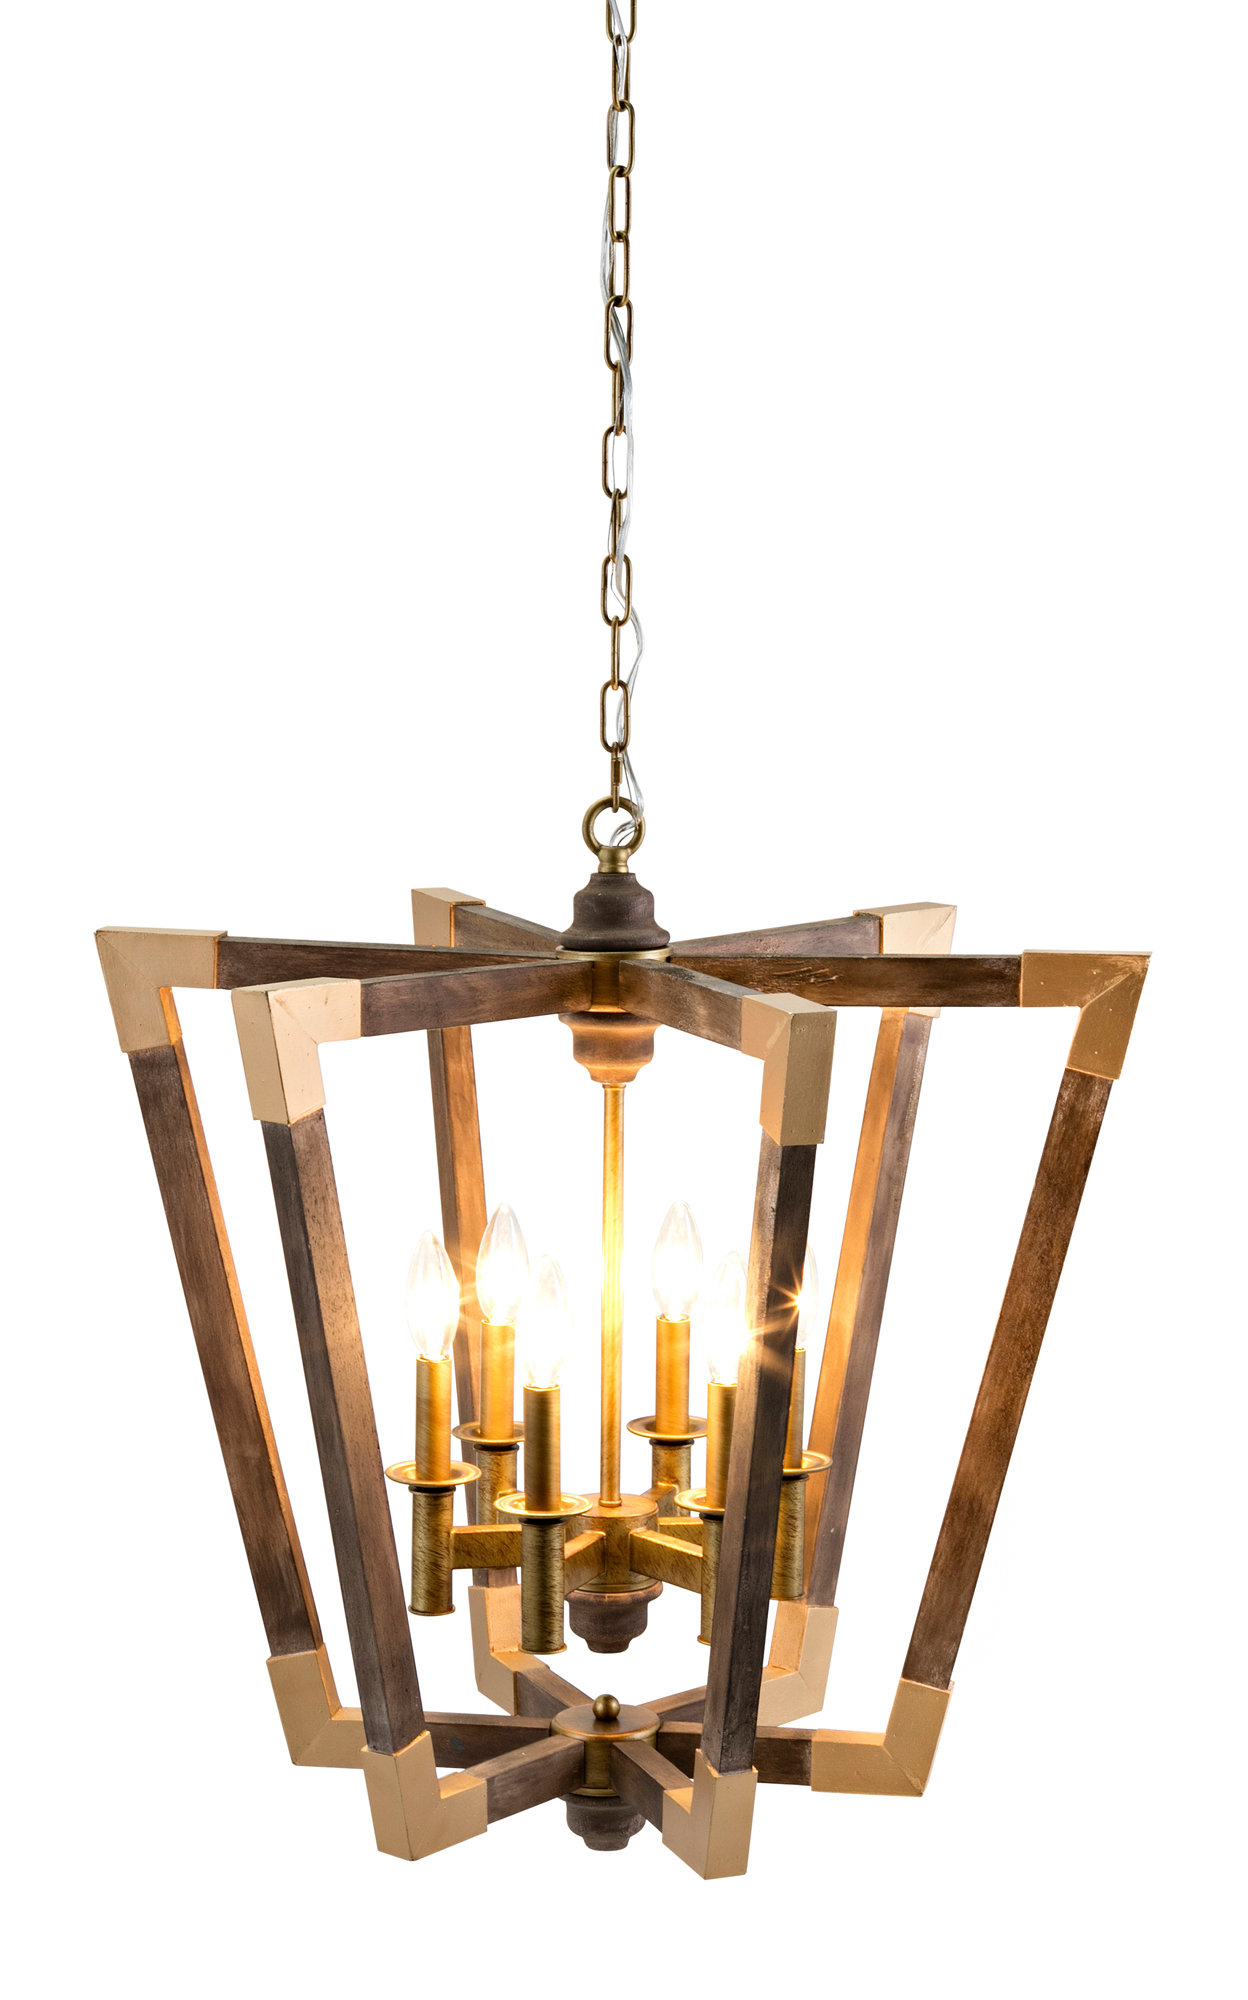 Tiana 4 Light Geometric Chandeliers In Fashionable Westfall Wood 6 Light Geometric Chandelier (View 21 of 25)